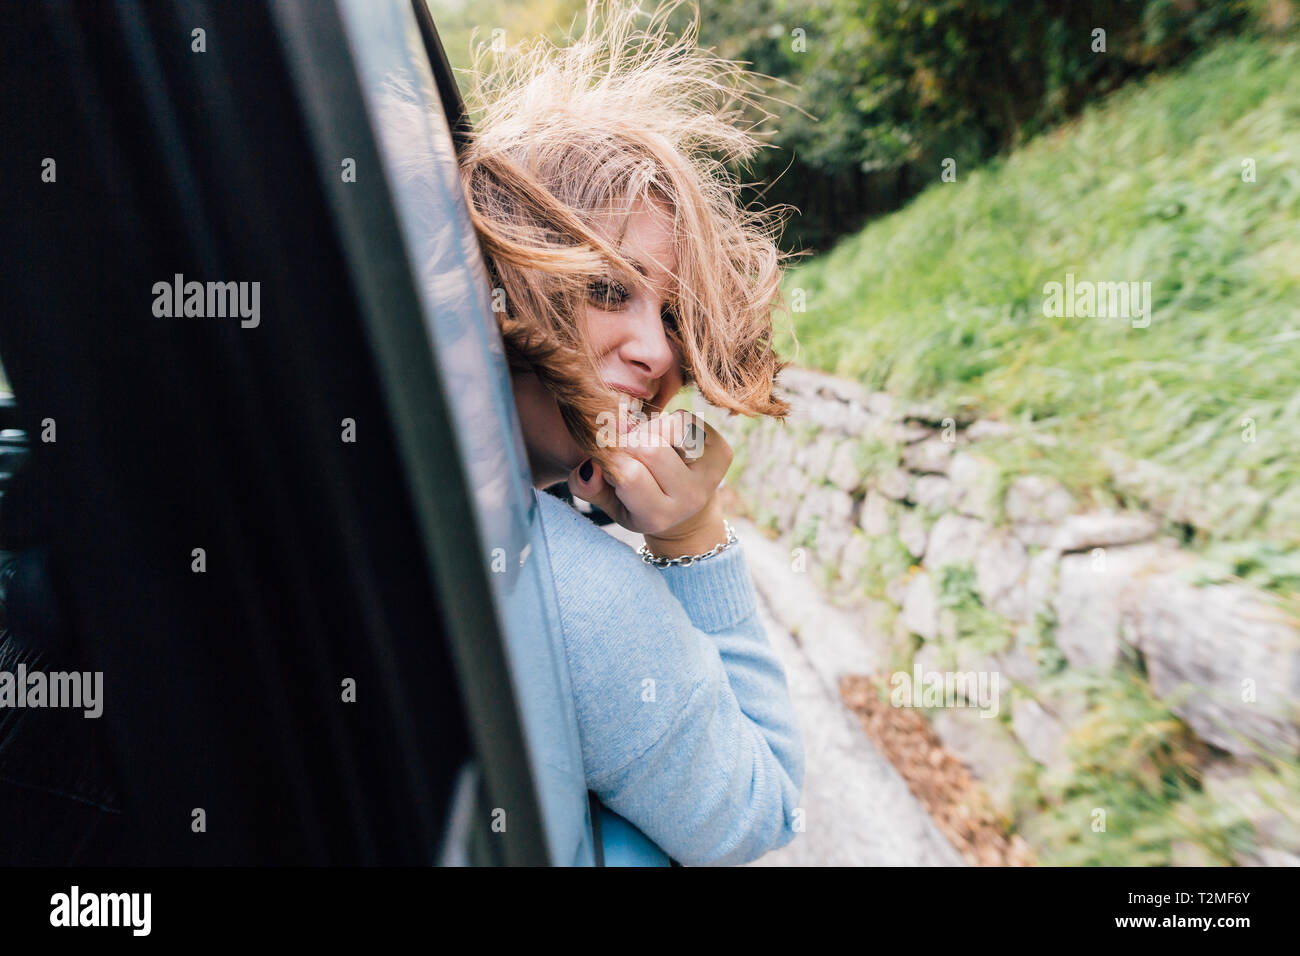 Woman turning around out of car window Stock Photo